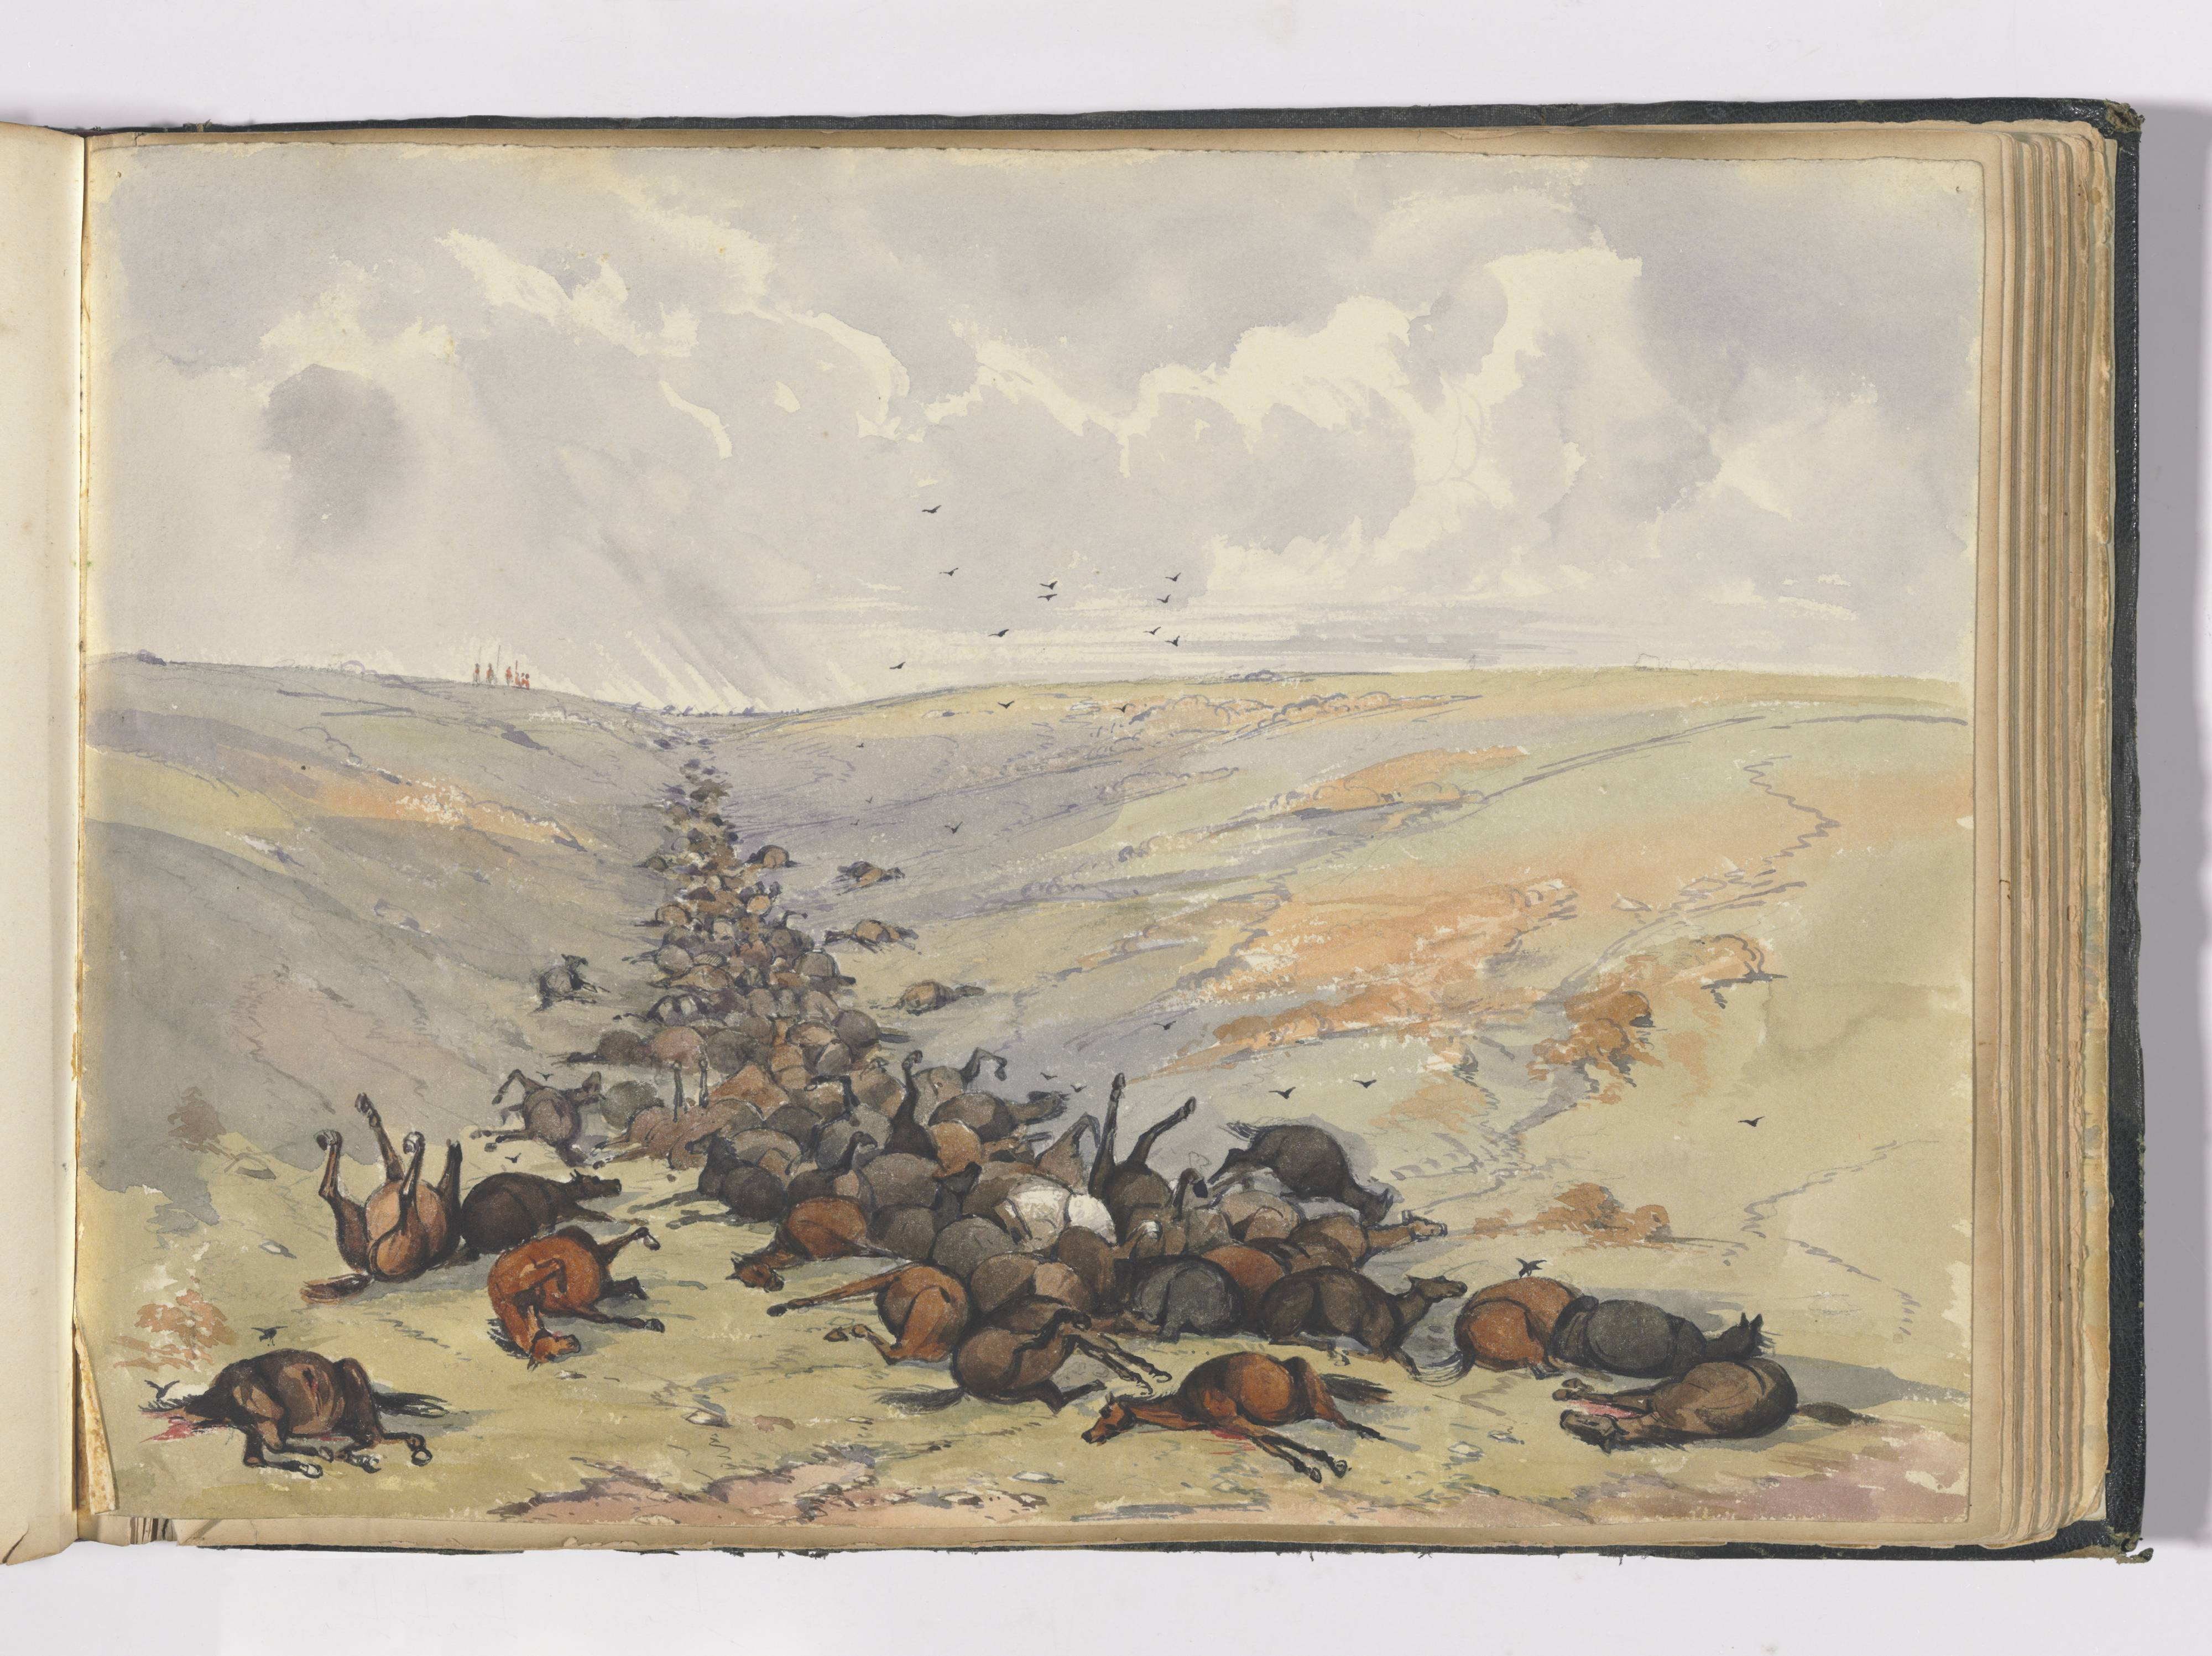 Watercolour painting. A large number of dead horses are depicted in a shallow ditch or trench.